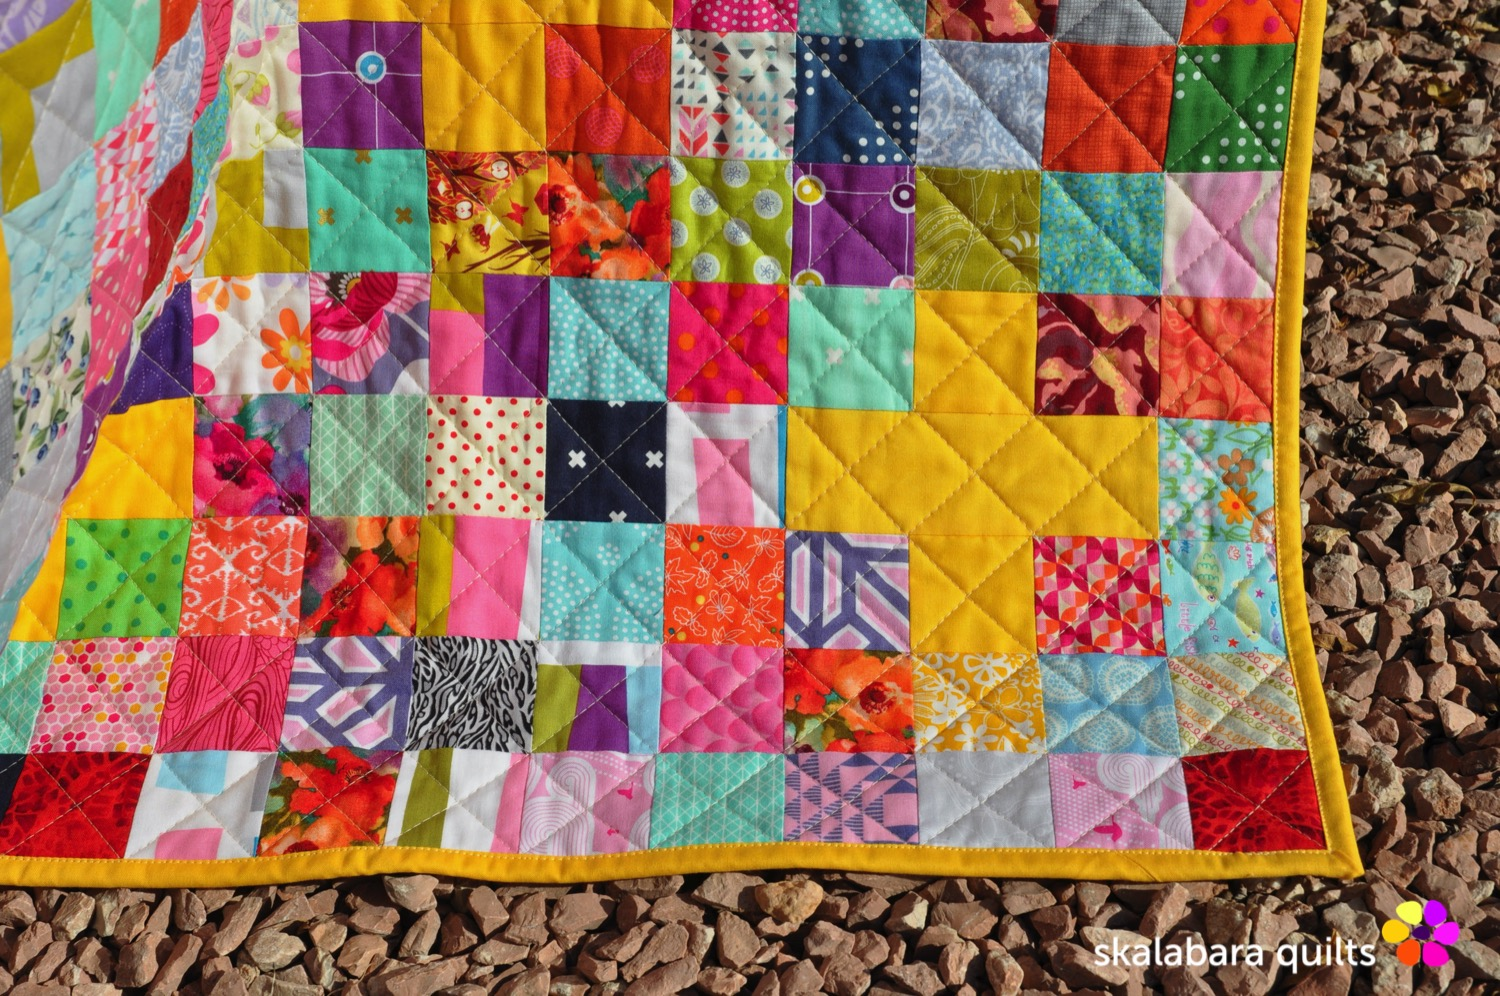 scrappy checkered quilt with crosses quilting - skalabara quilts